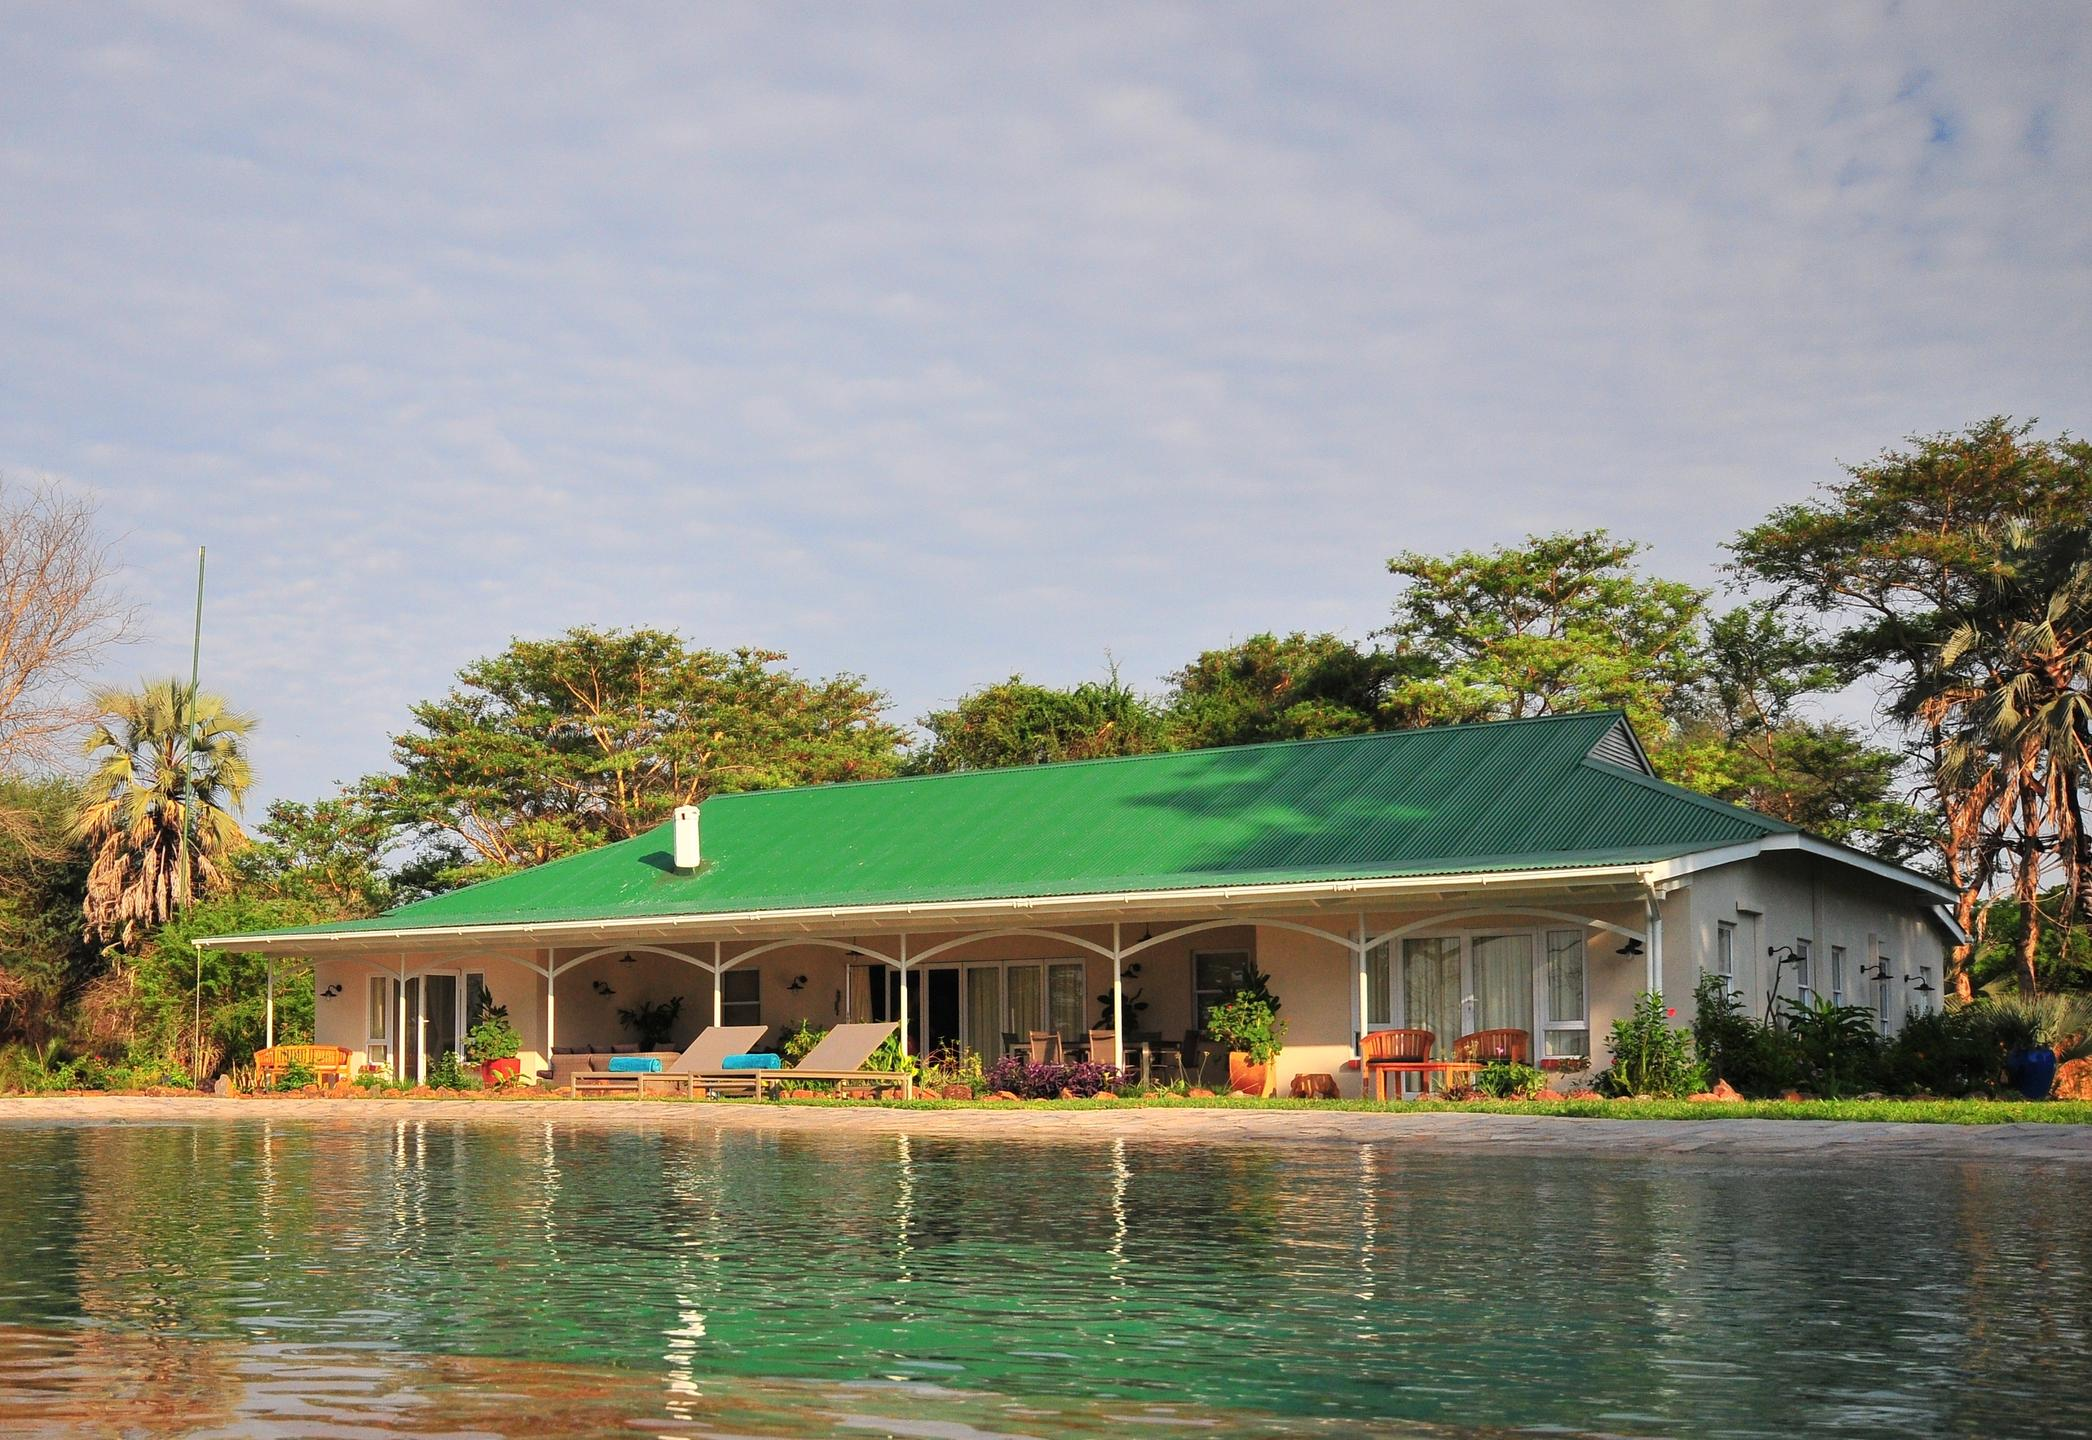 The River Farmhouse - Waterberry Lodge